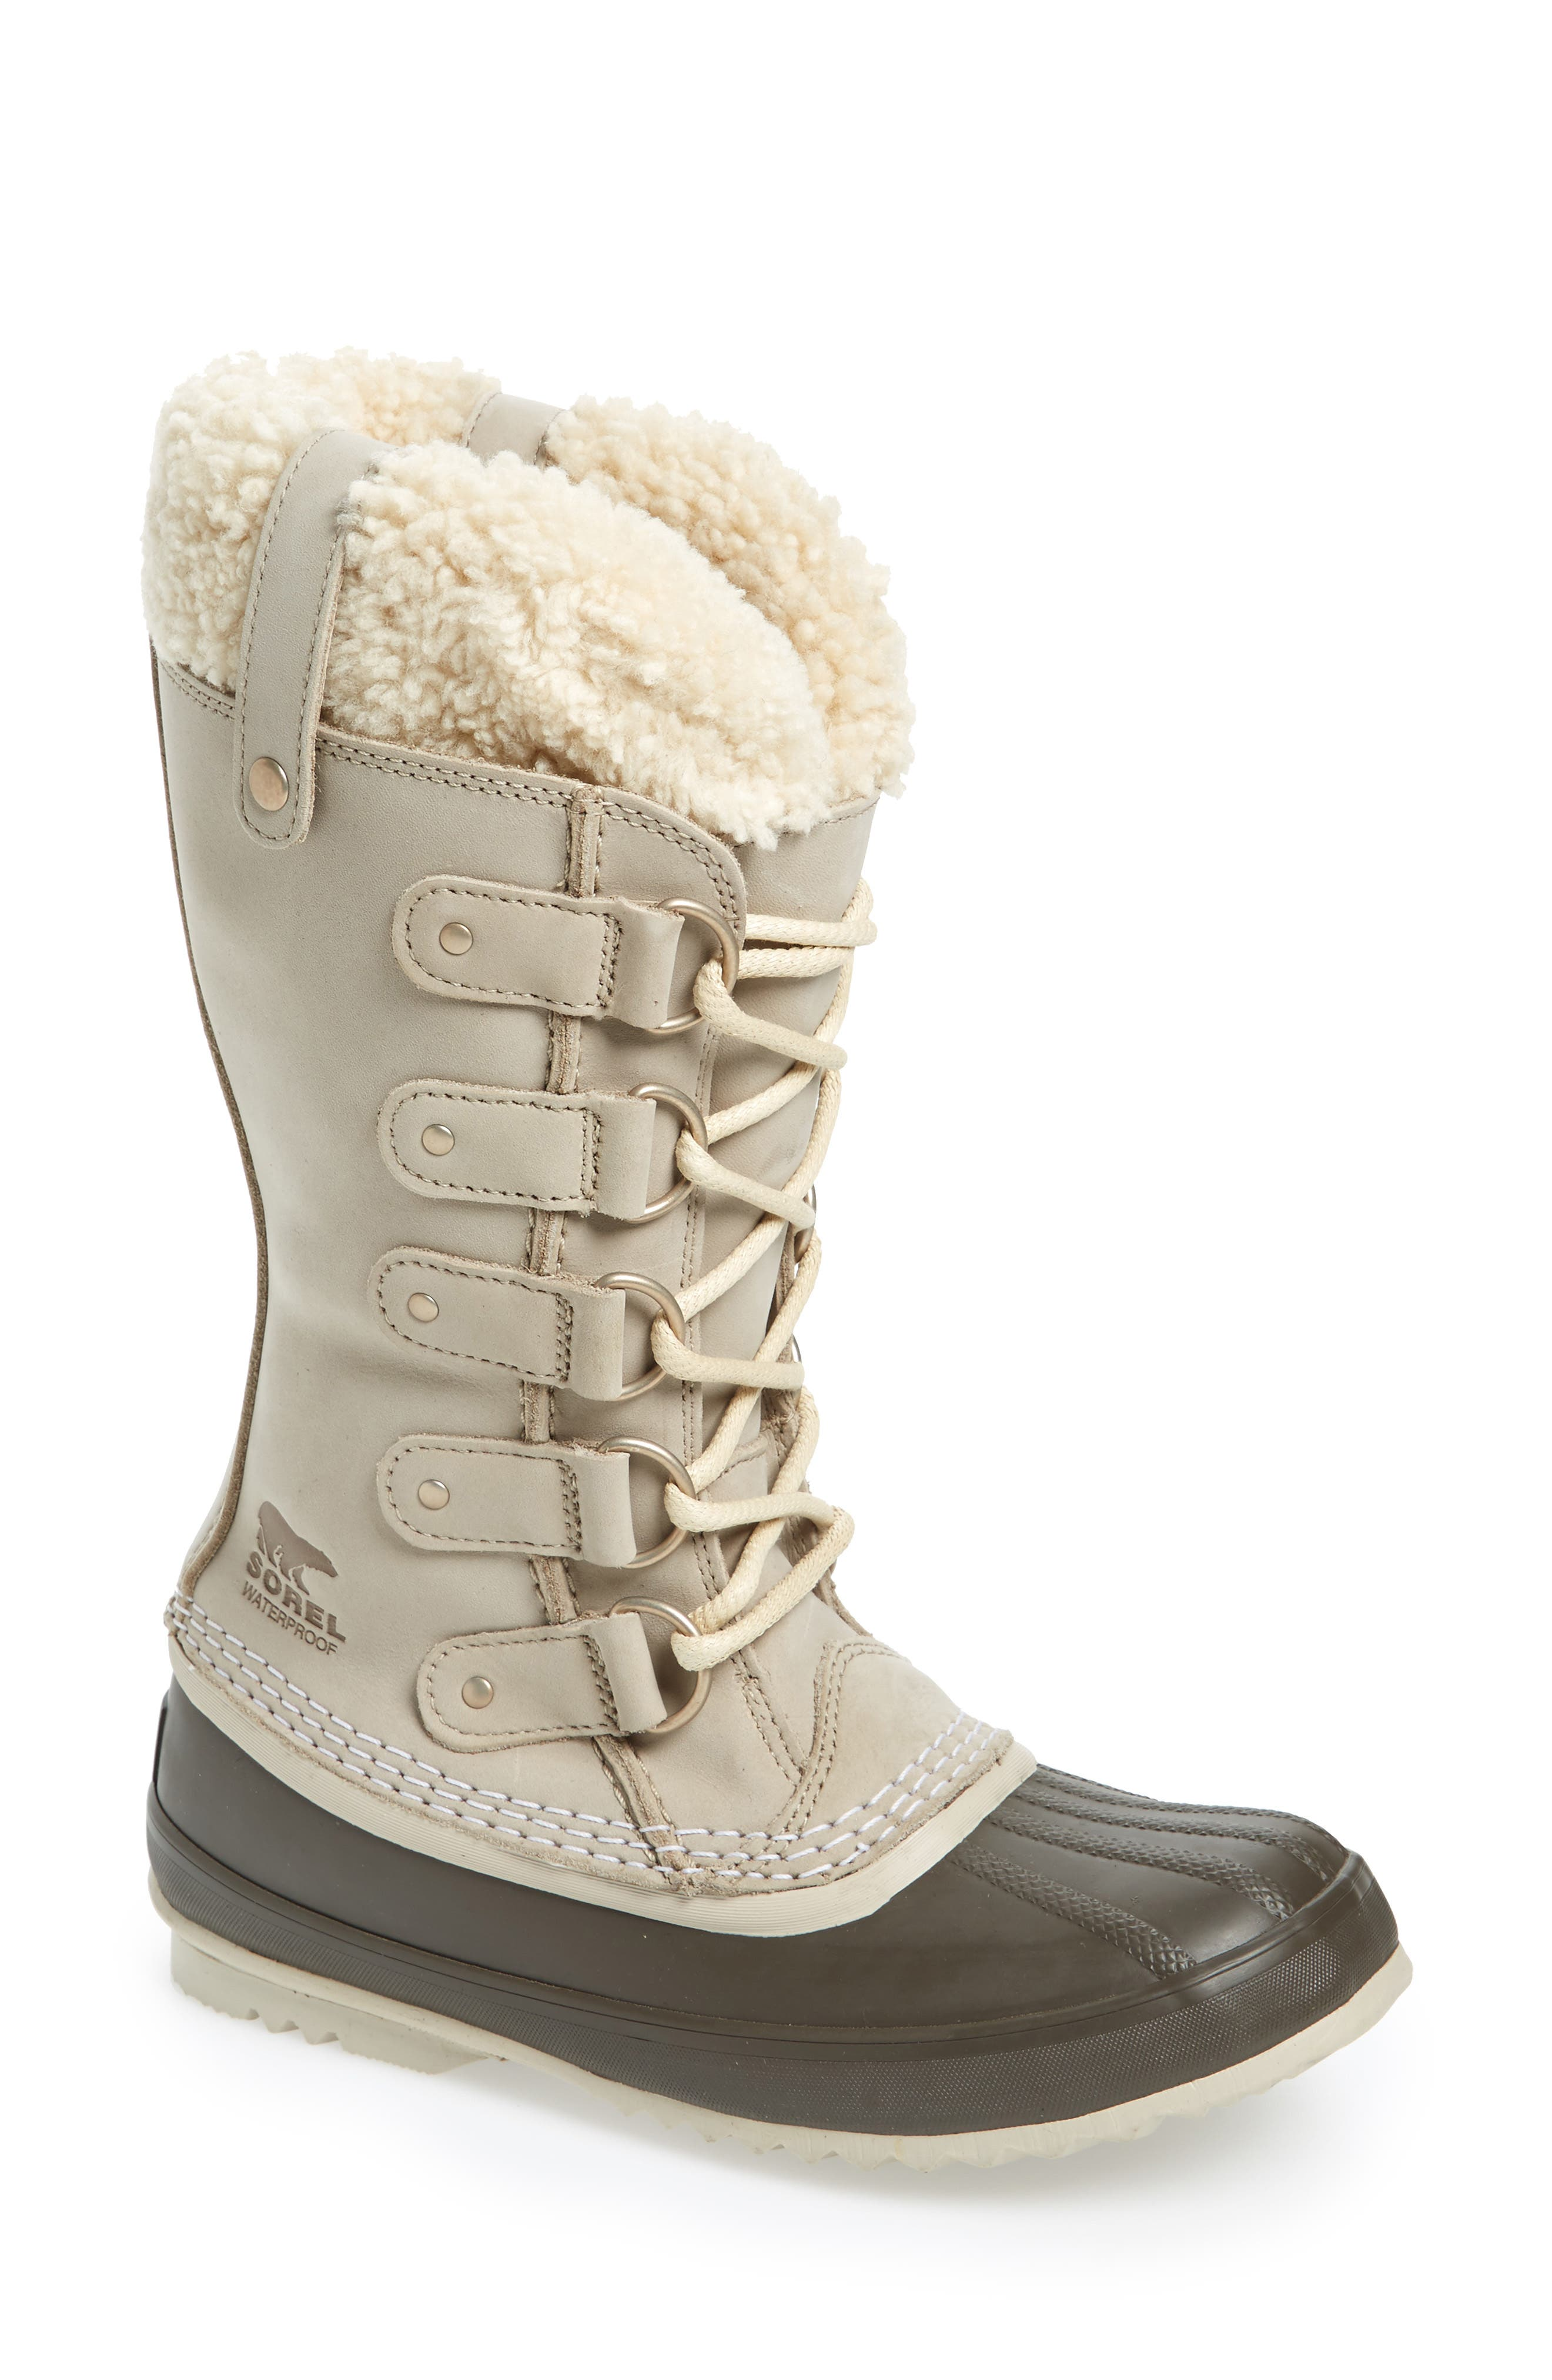 Joan of Arctic<sup>™</sup> Lux Waterproof Winter Boot with Genuine  Shearling Cuff,                             Main thumbnail 1, color,                             271